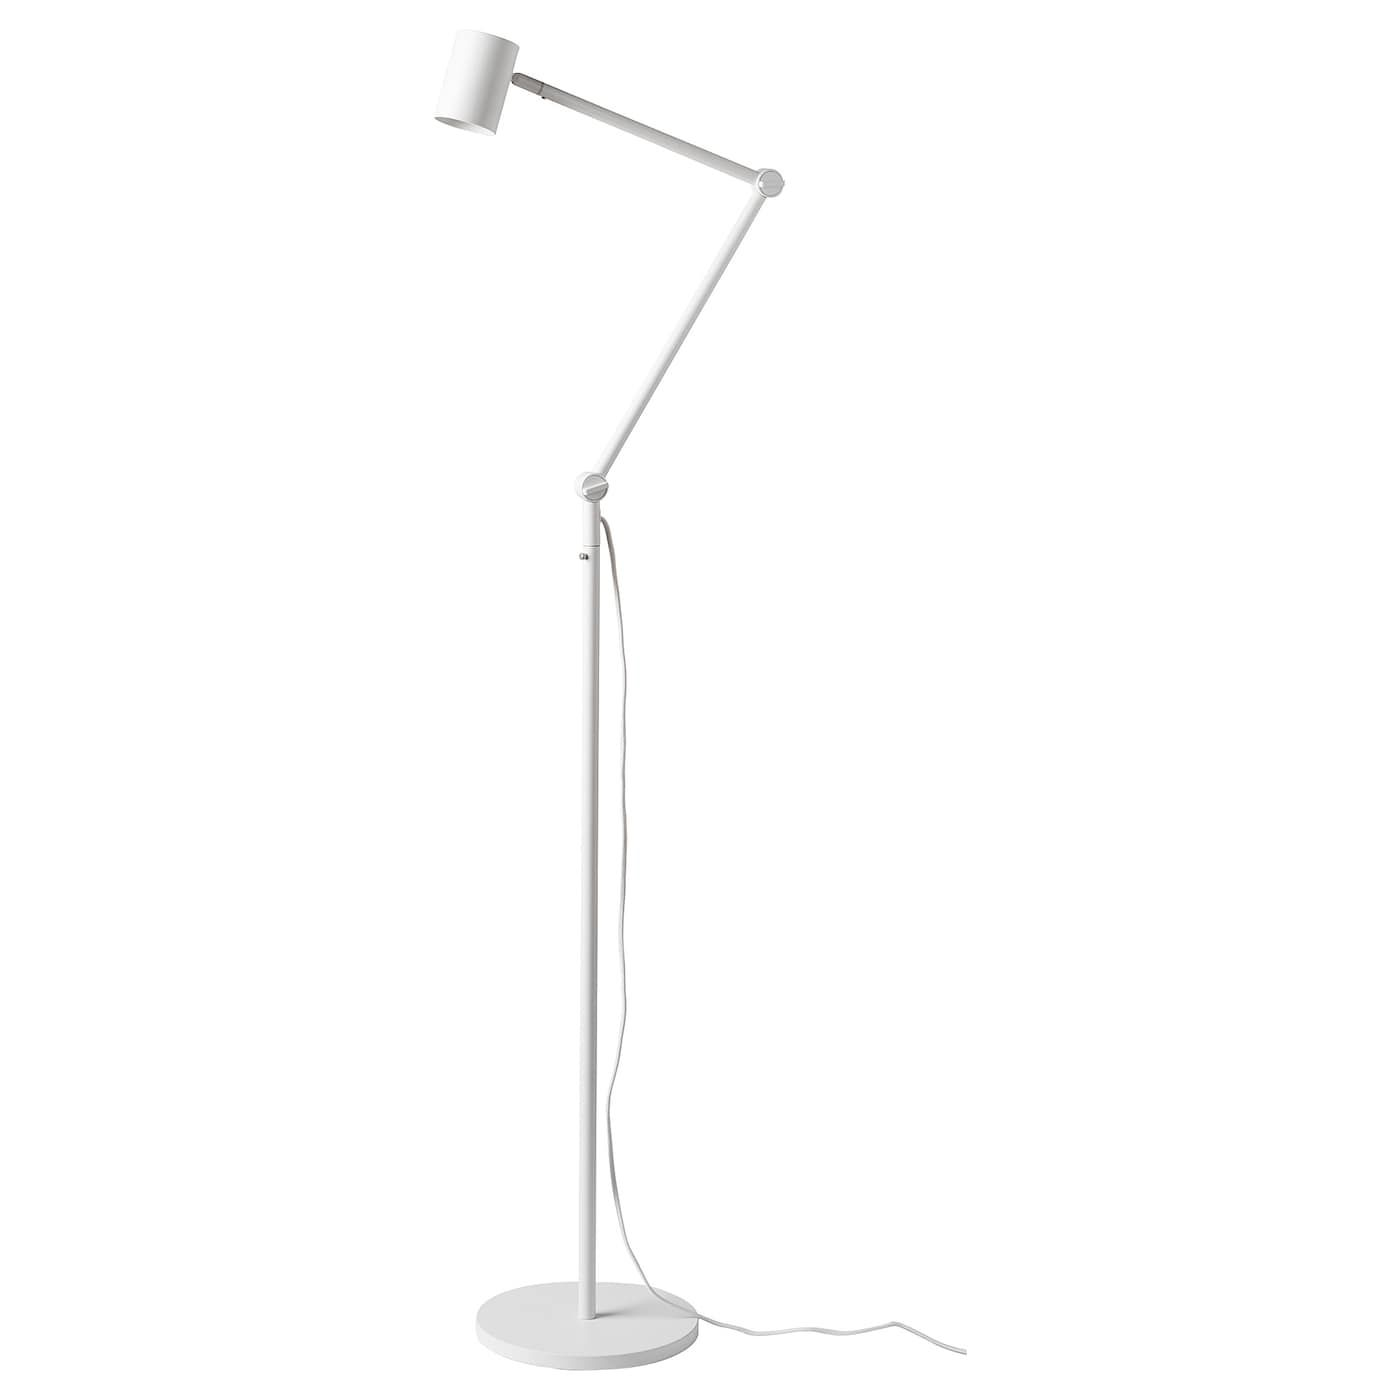 Nymane Stand Leseleuchte Weiss Ikea Osterreich Lampen Led